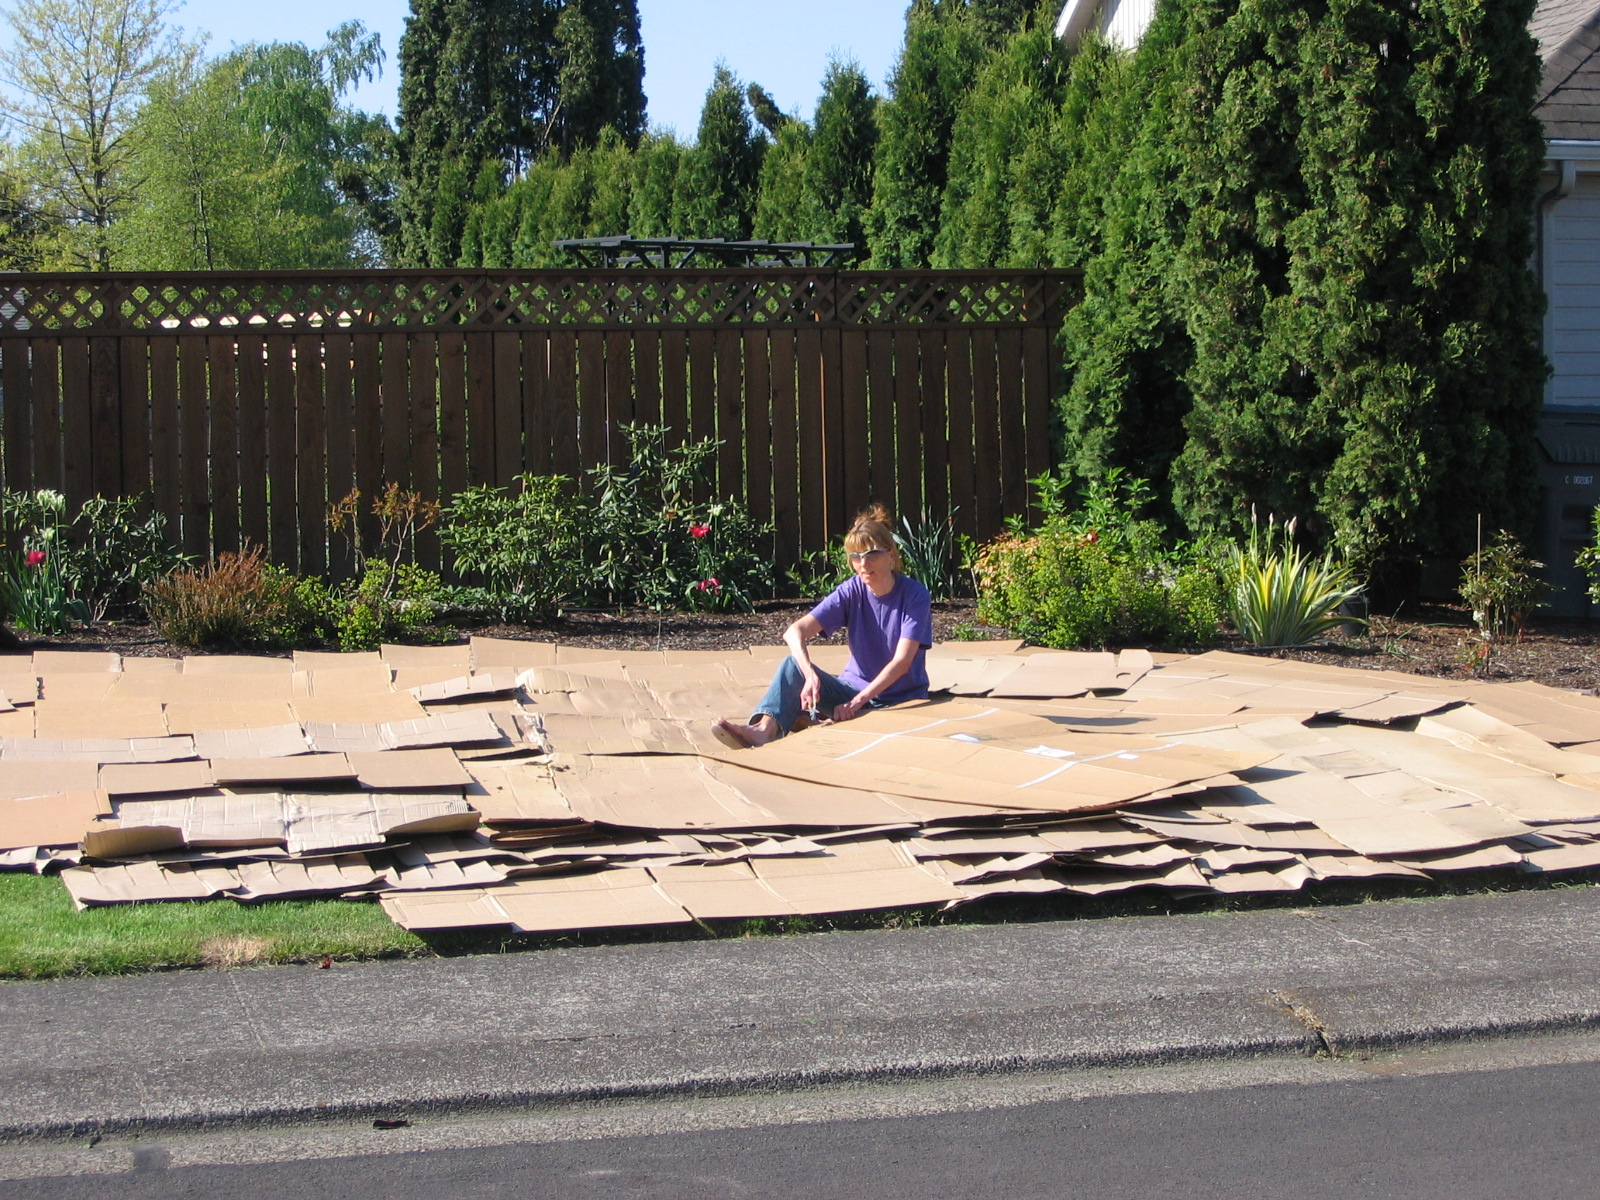 Covering lawn with a layer of flattened cardboard boxes